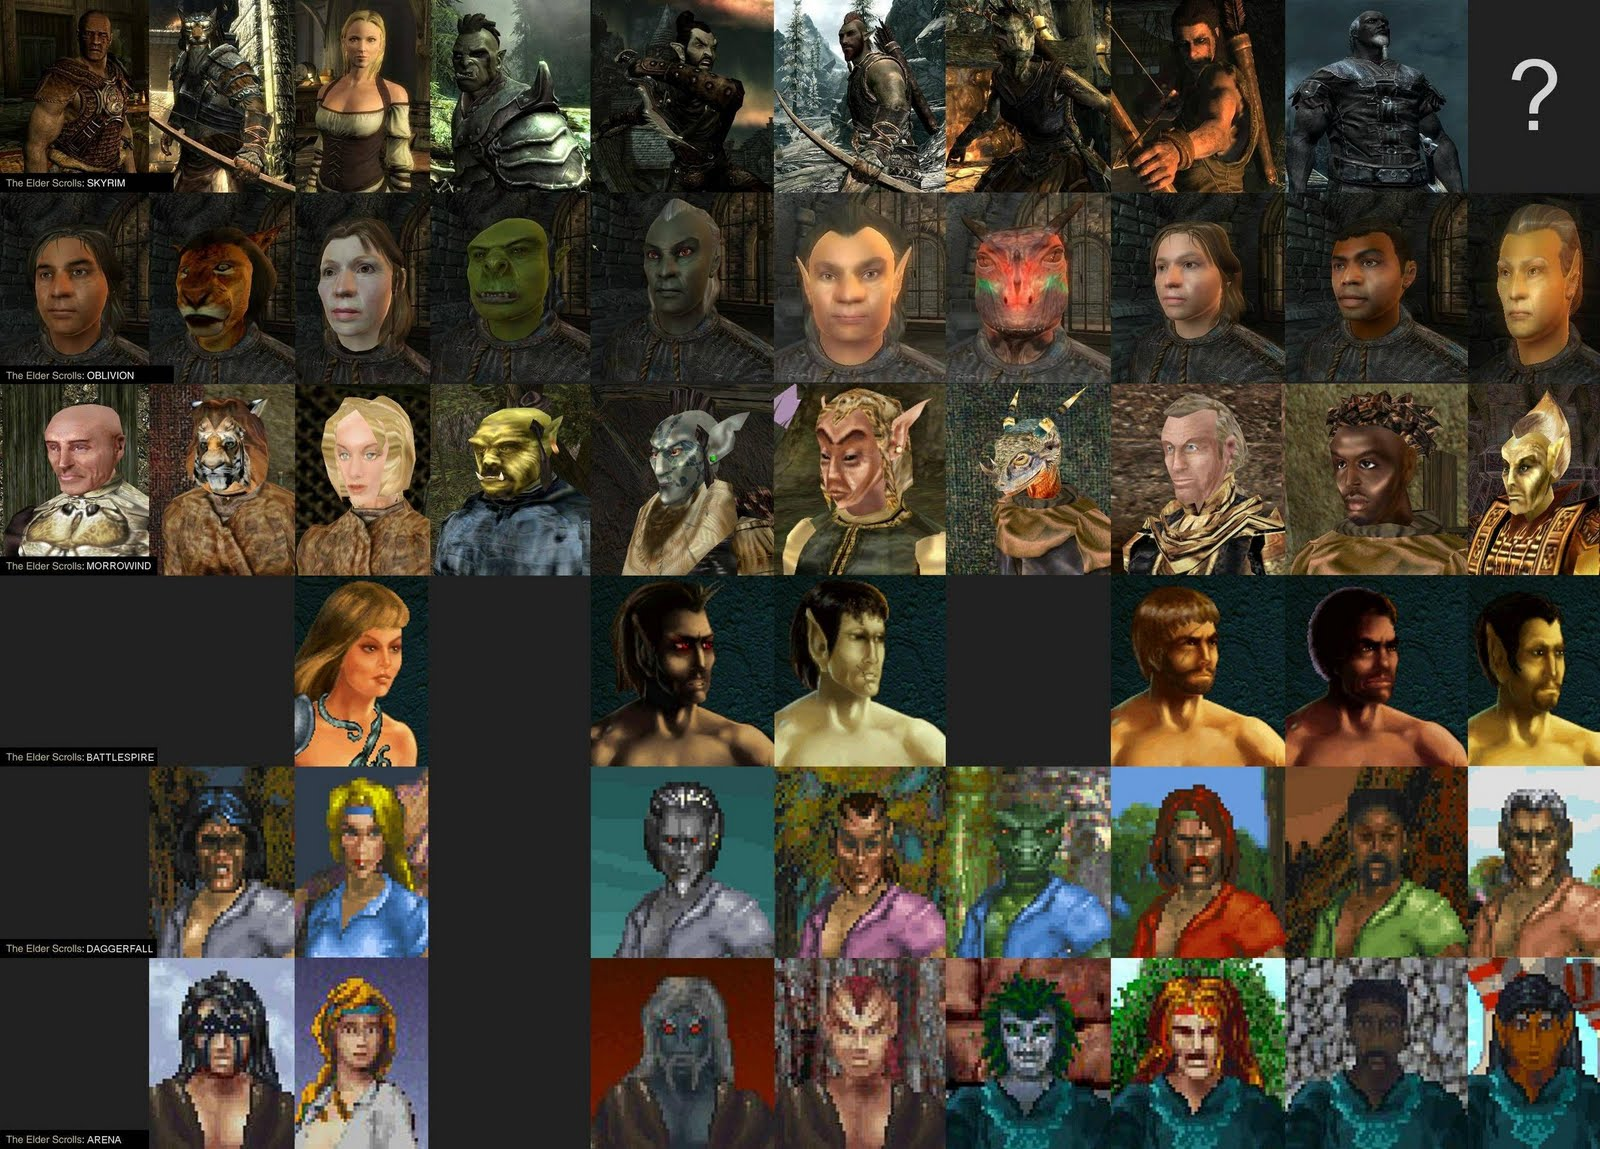 Life of Doon: Elder Scrolls Evolution